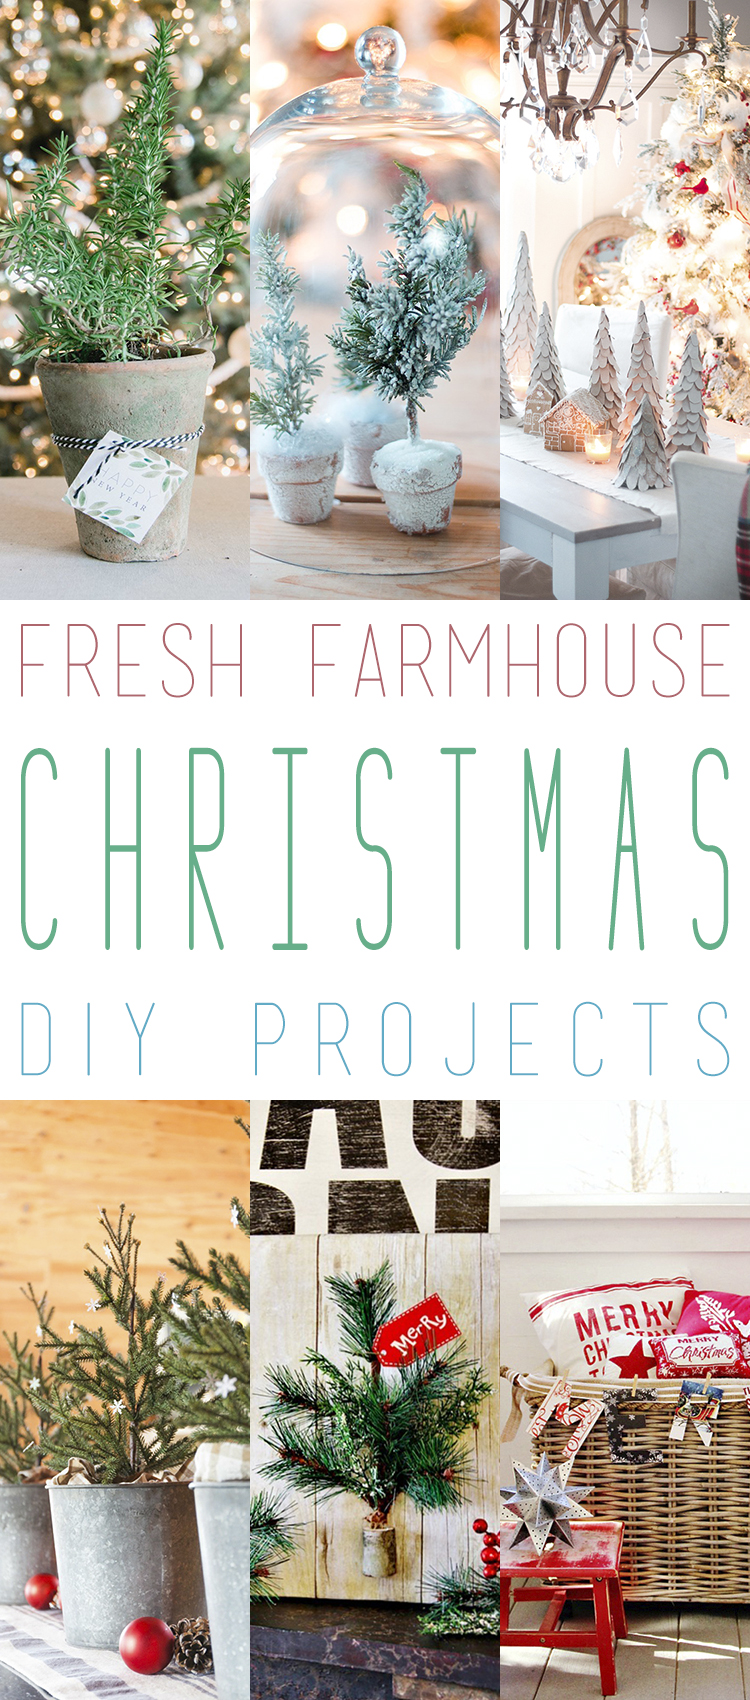 http://thecottagemarket.com/wp-content/uploads/2016/11/FarmhouseChristmas-TOWER-00001.jpg